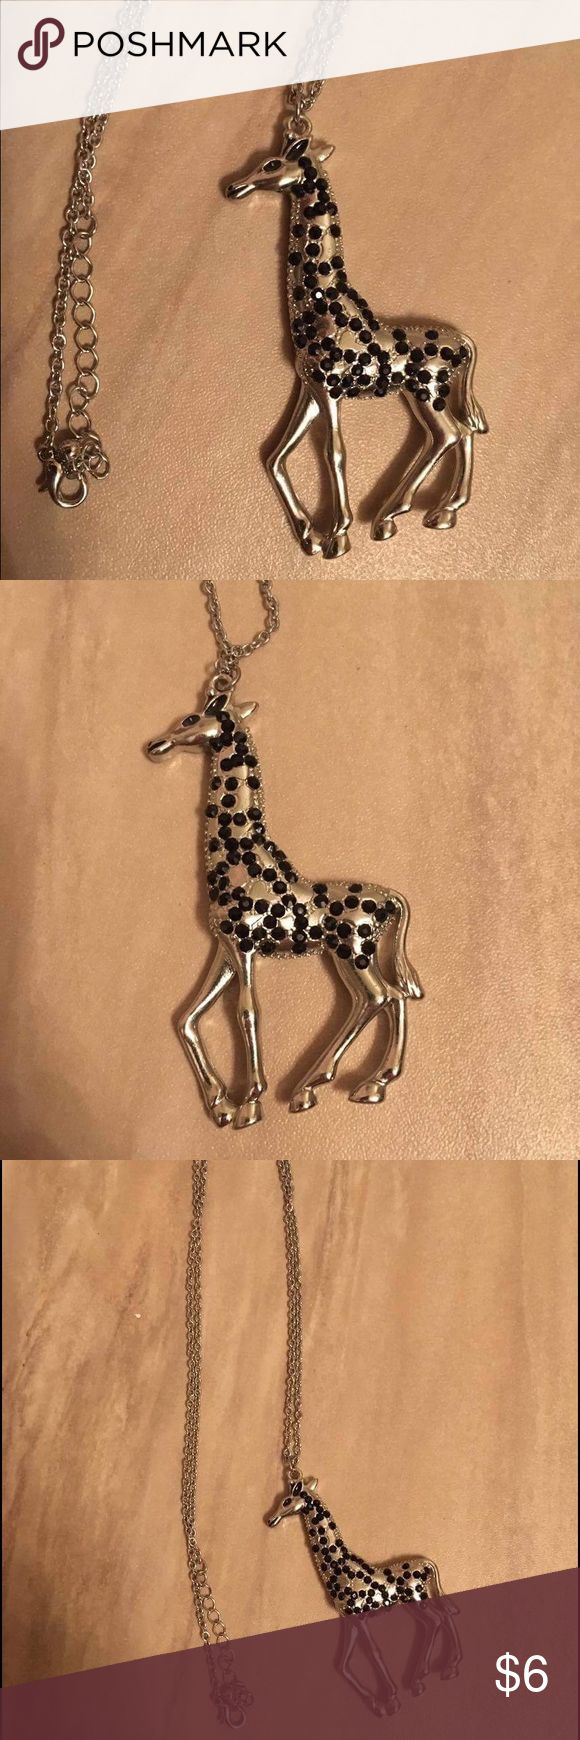 Forever 21 long silver giraffe necklace Silver long giraffe necklace from Forever 21- never been worn! Forever 21 Jewelry Necklaces